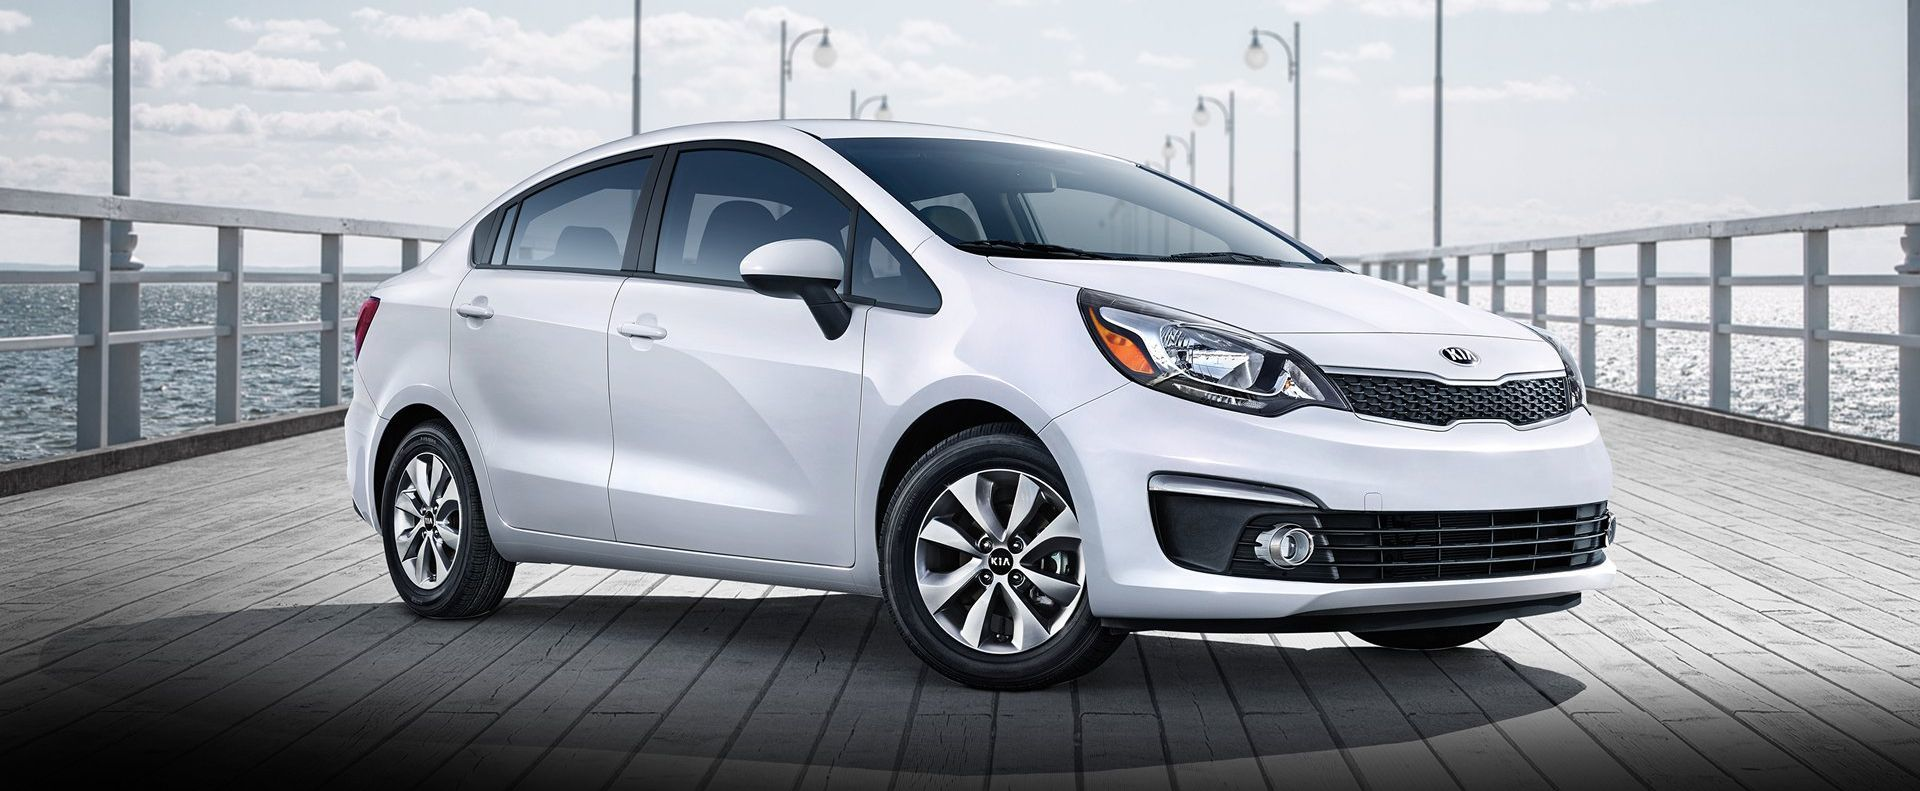 2017 Kia Rio for Sale in Oklahoma City, OK